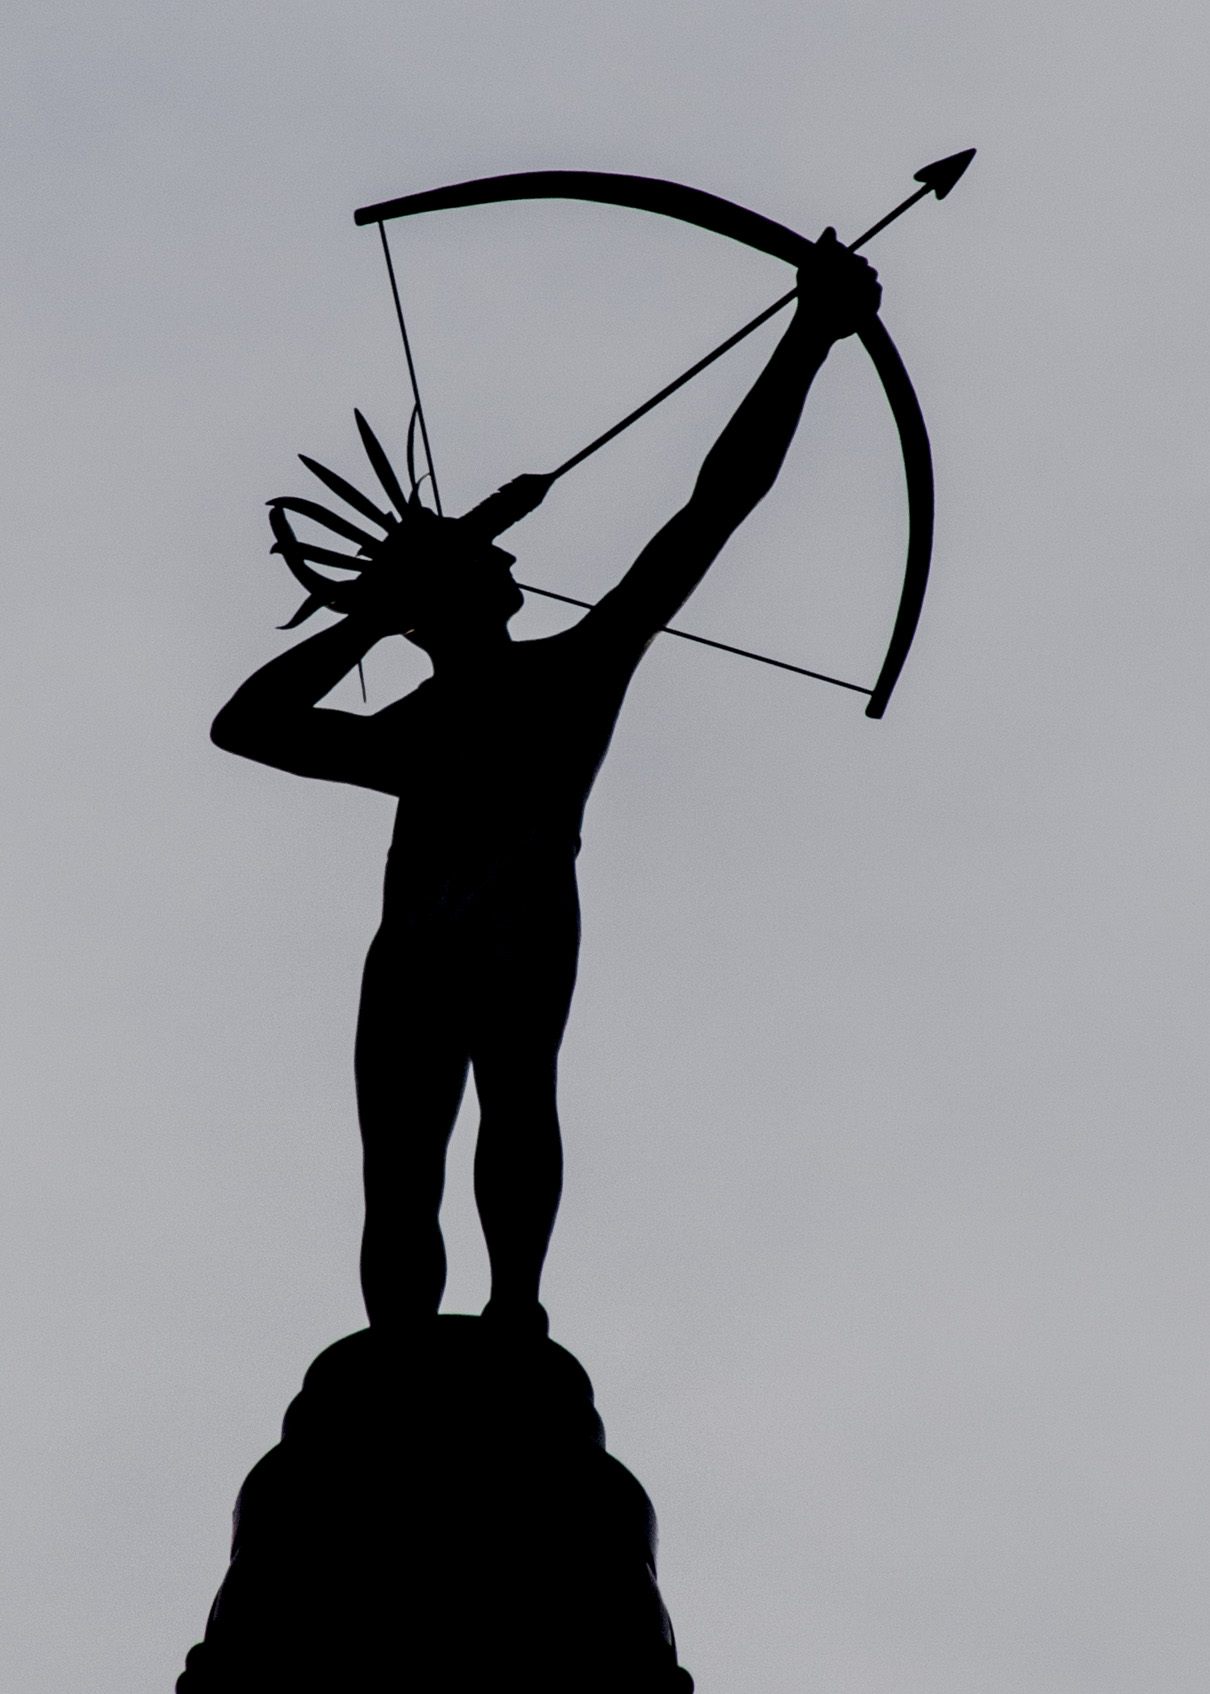 Ad Astra is the name of the statue of the Native American standing atop the Kansas Statehouse dome. (Photo by Dan Skinner)